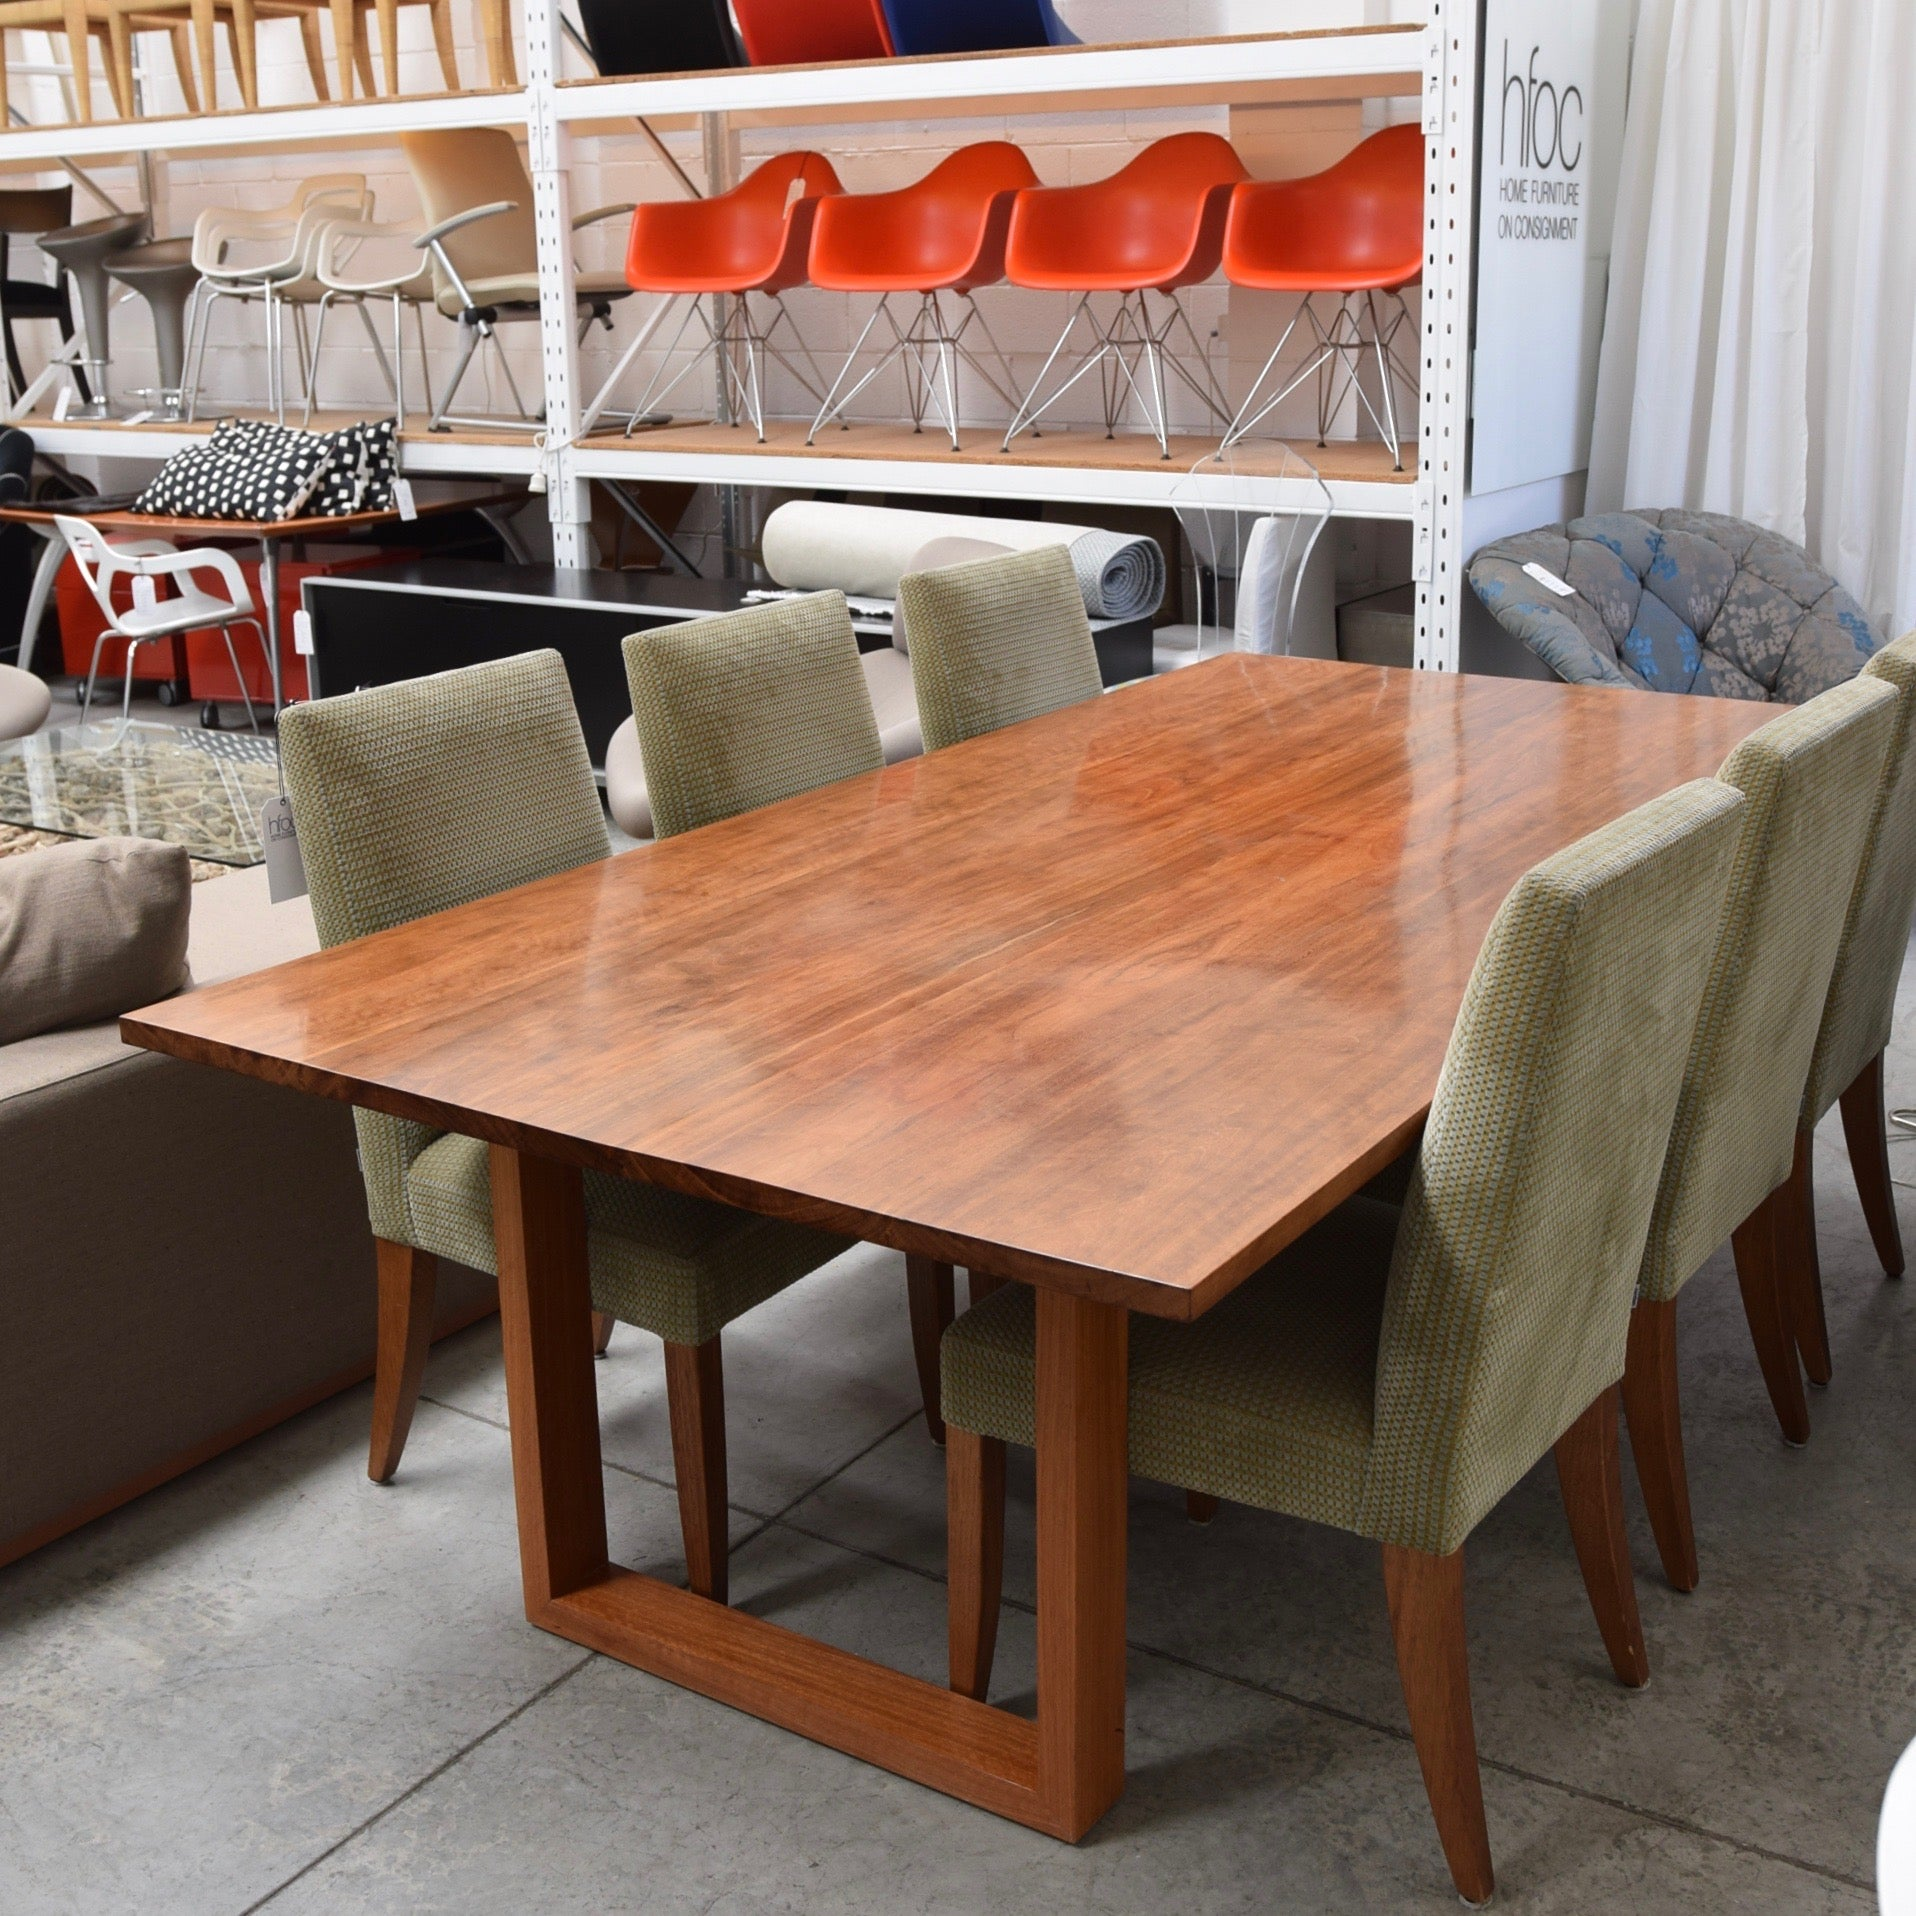 Slab dining table by planet furniture home furniture on for Reduced furniture